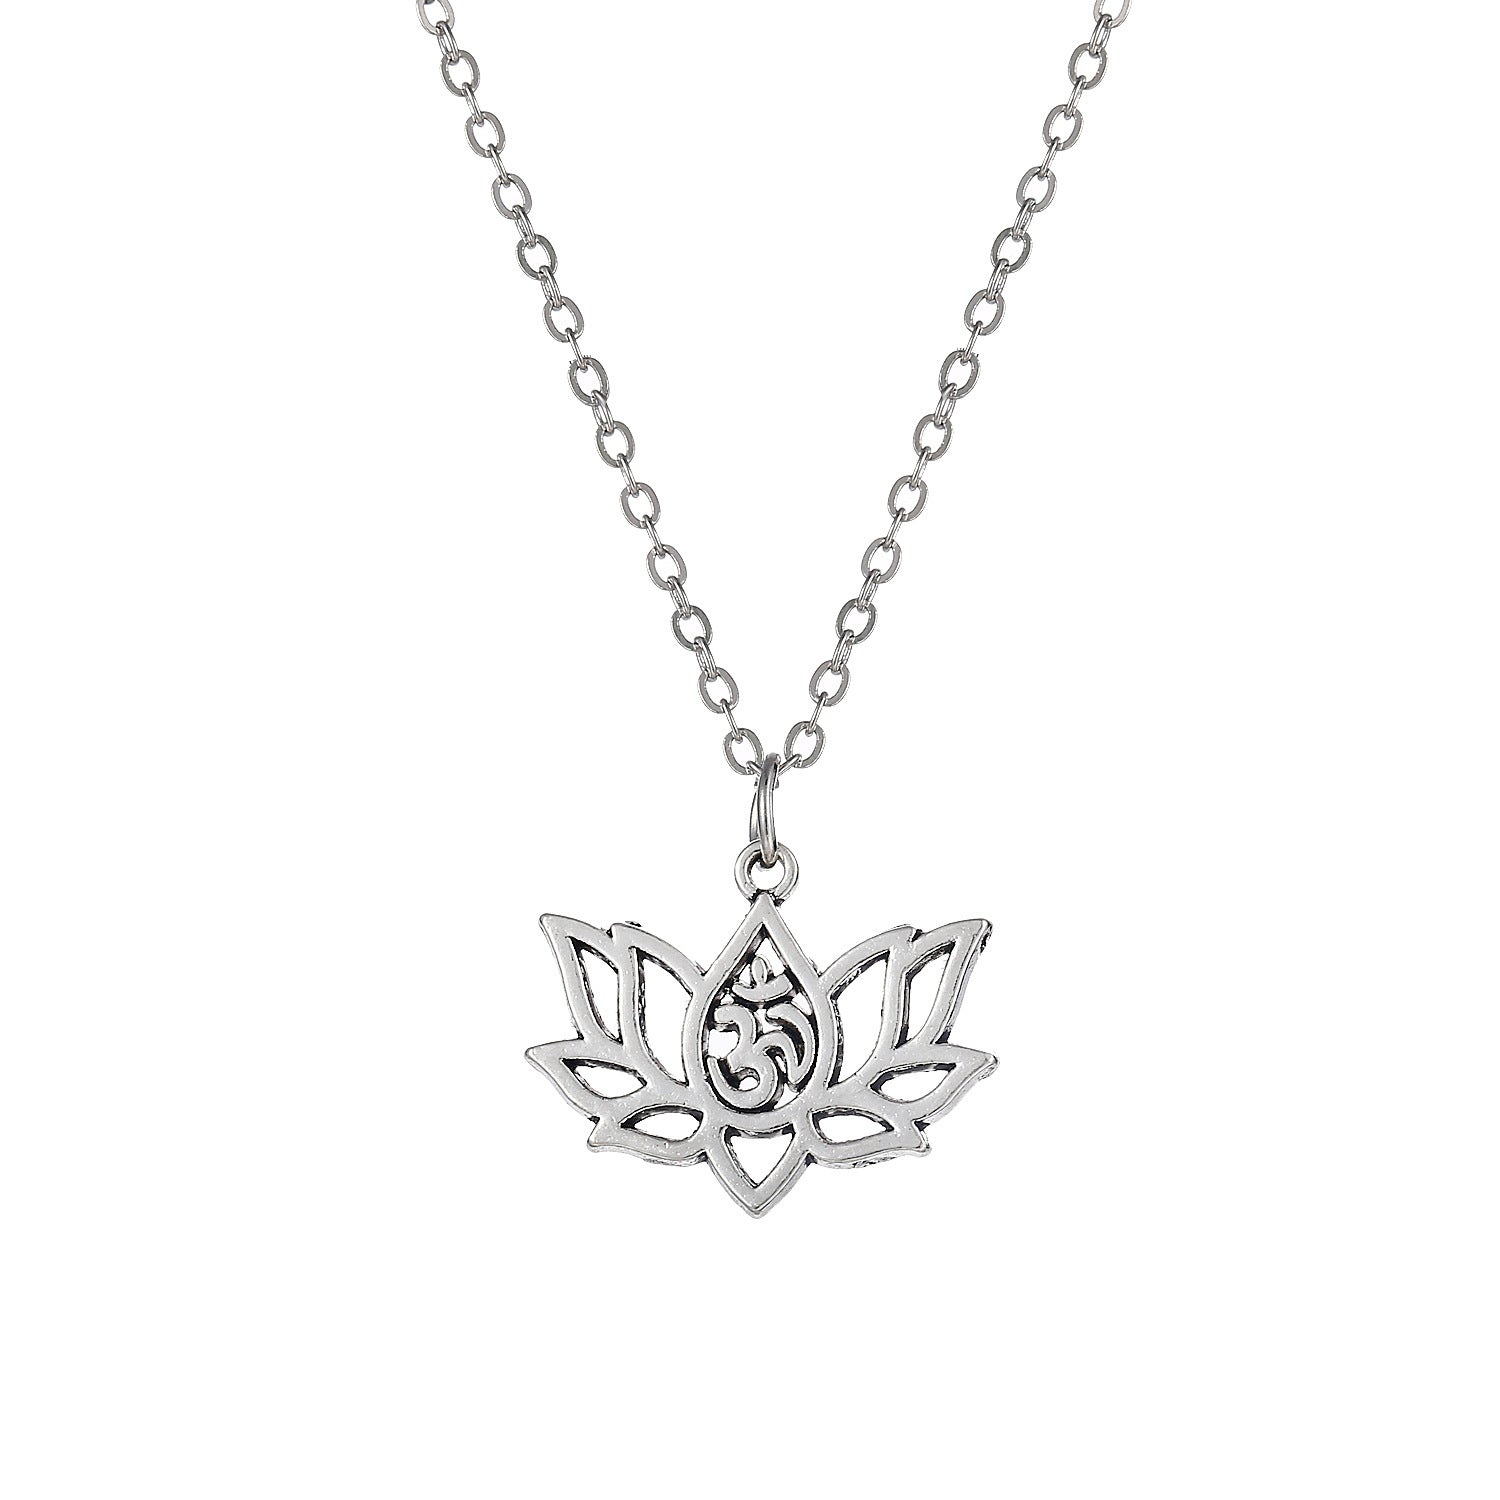 Women Single Layer Necklace Pendant Gold Silver Lotus Flower Chain